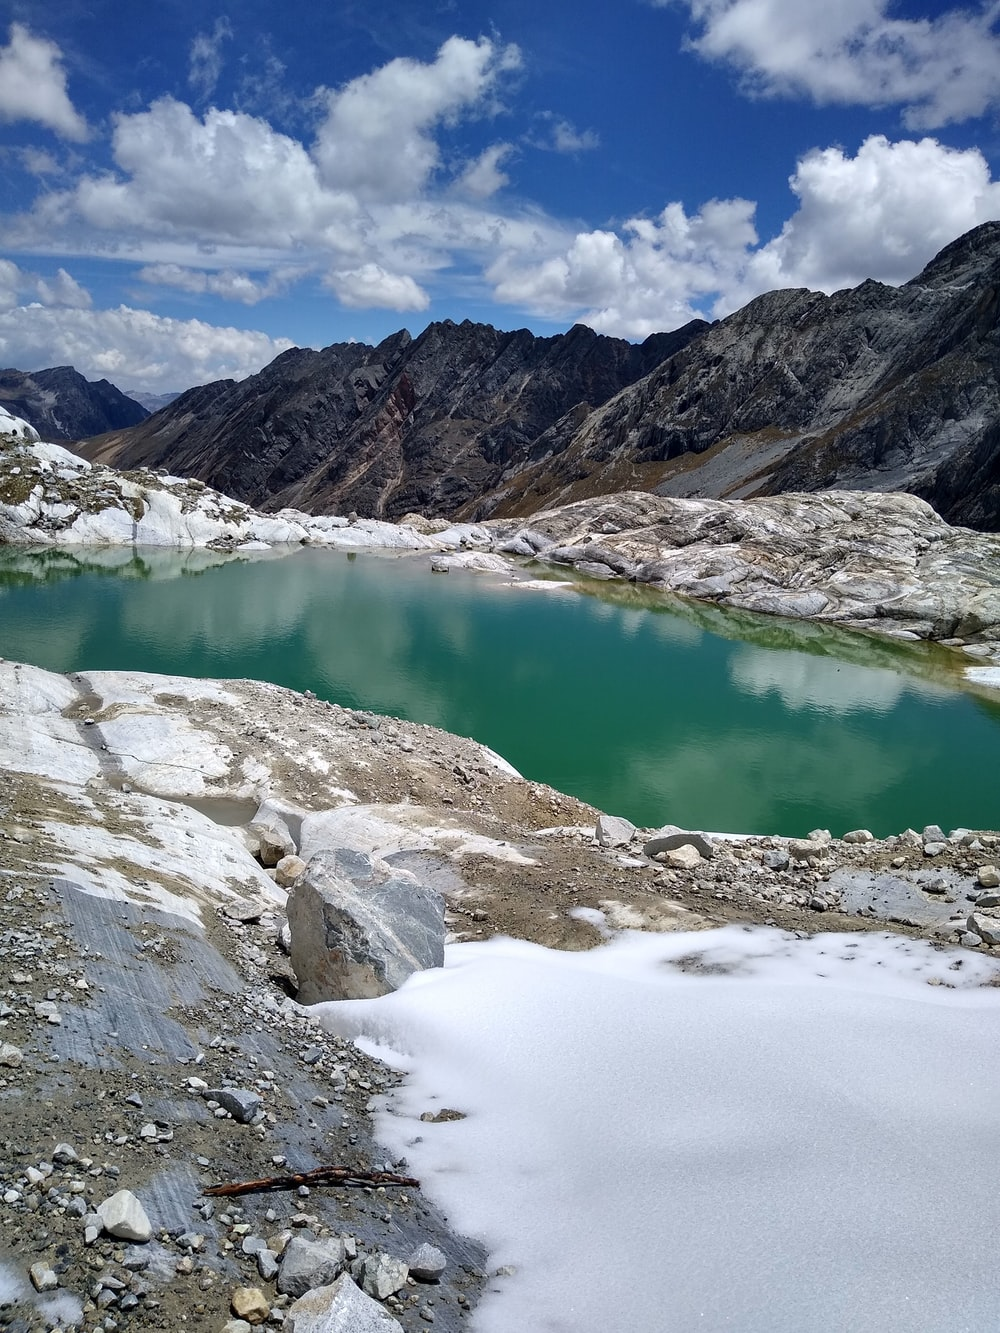 lake in the middle of mountains during daytime